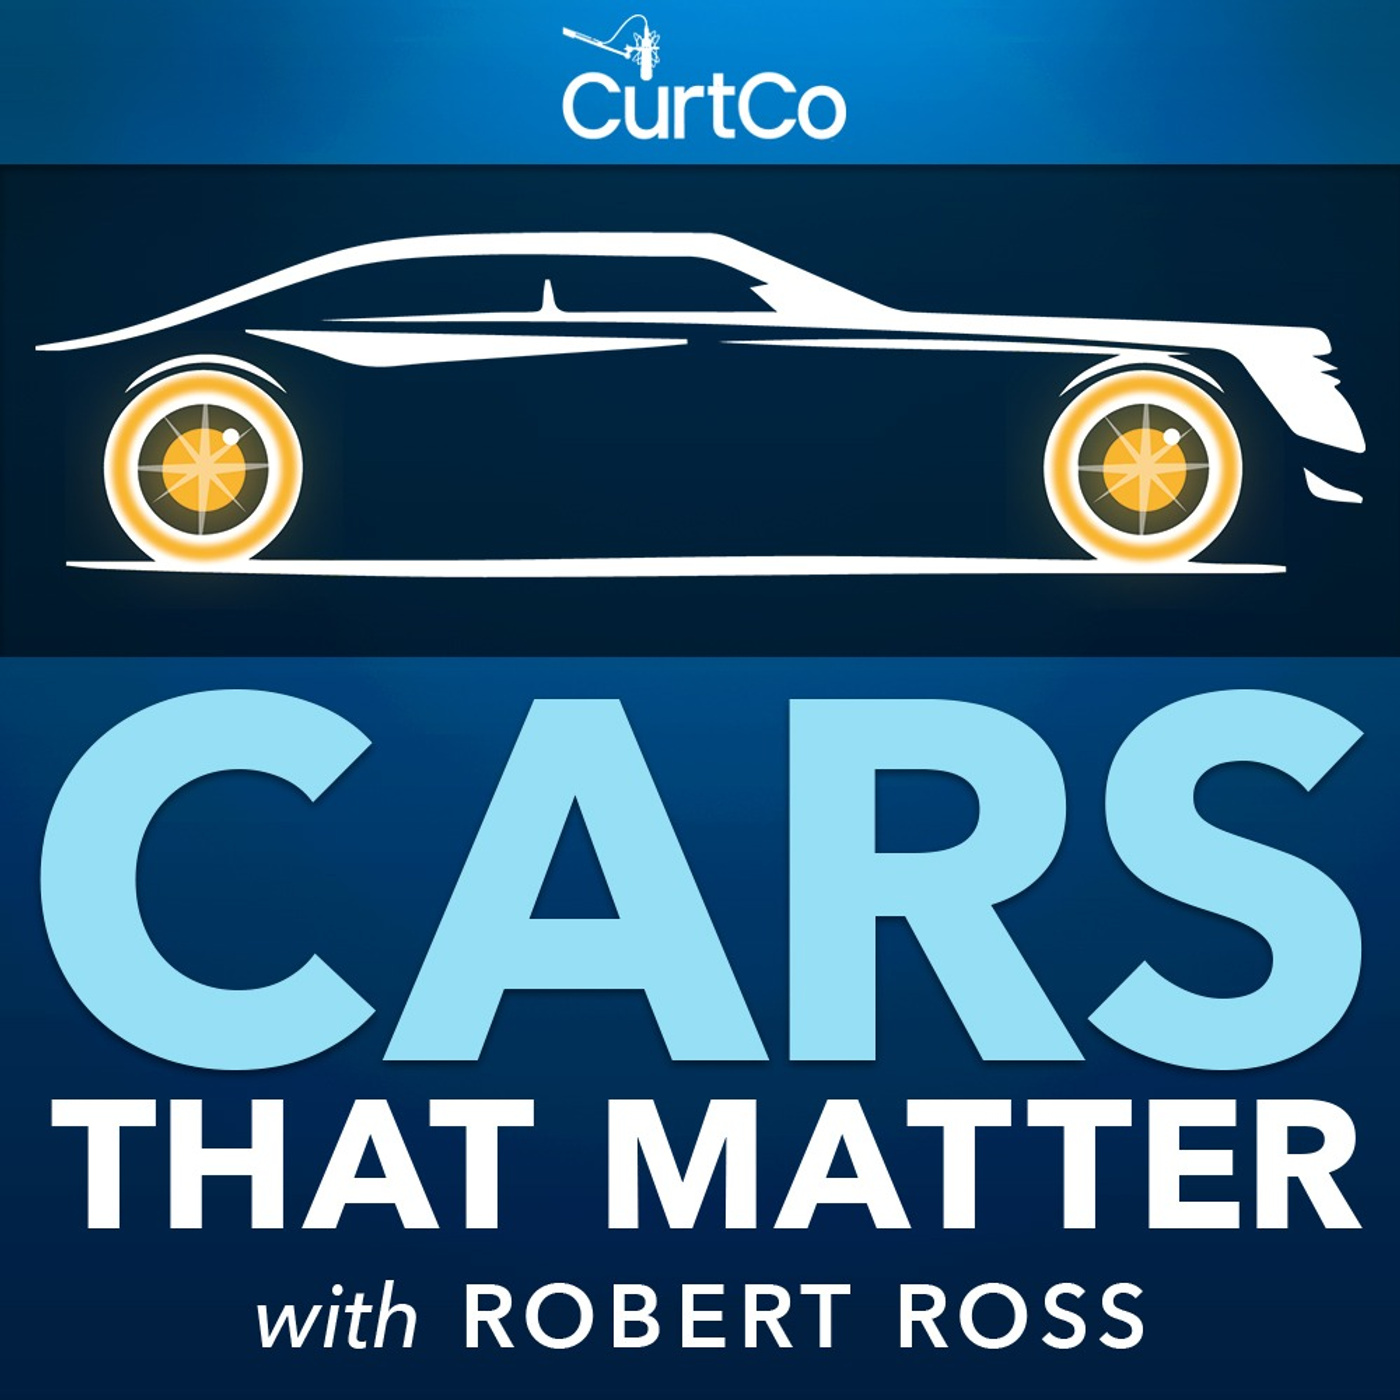 03 - Car Design with Ian Cameron and Verena Kloos Part 1 - Rolls Royce and Design Works